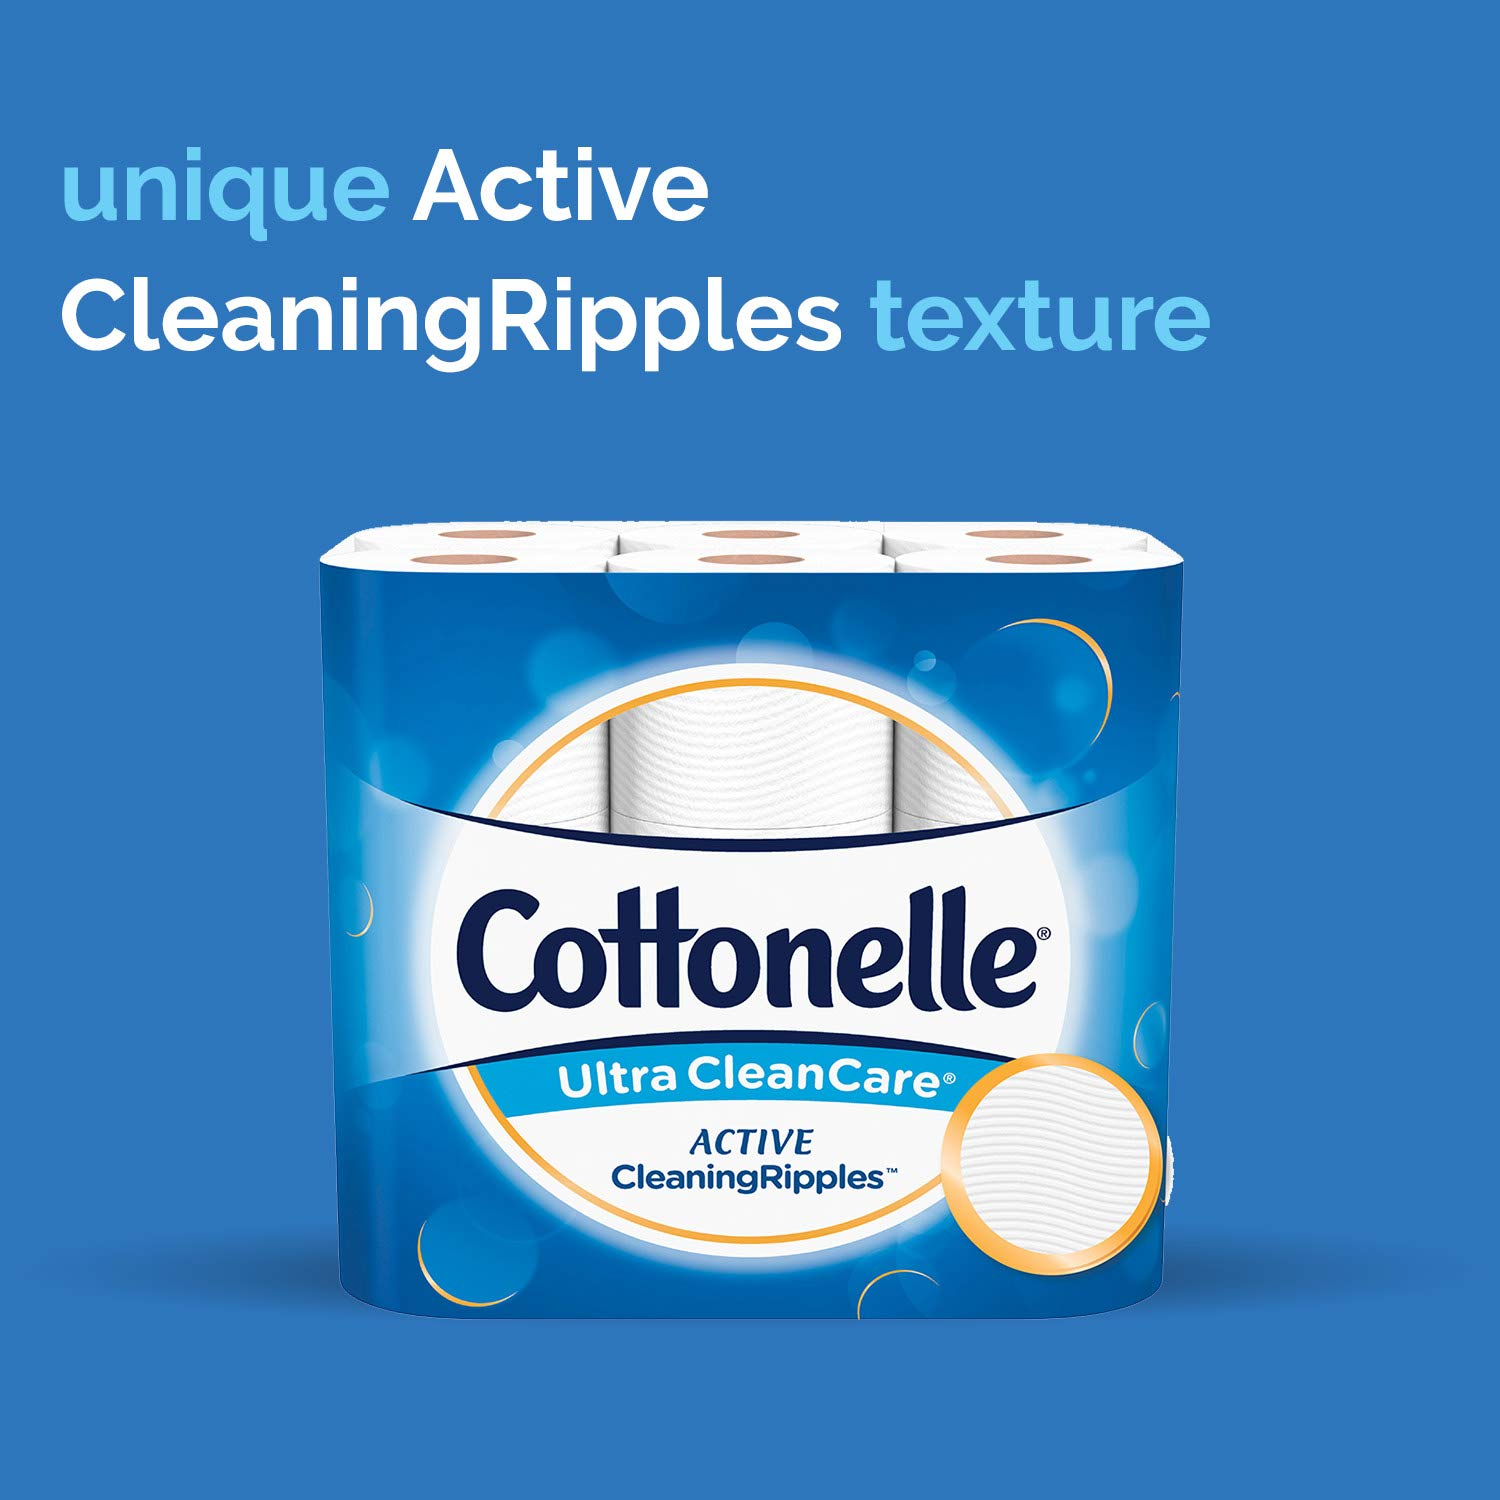 Cottonelle Ultra CleanCare Toilet Paper with Active CleaningRipples, Strong Biodegradable Bath Tissue, Septic-Safe, 24 Family Mega Rolls by Cottonelle (Image #5)